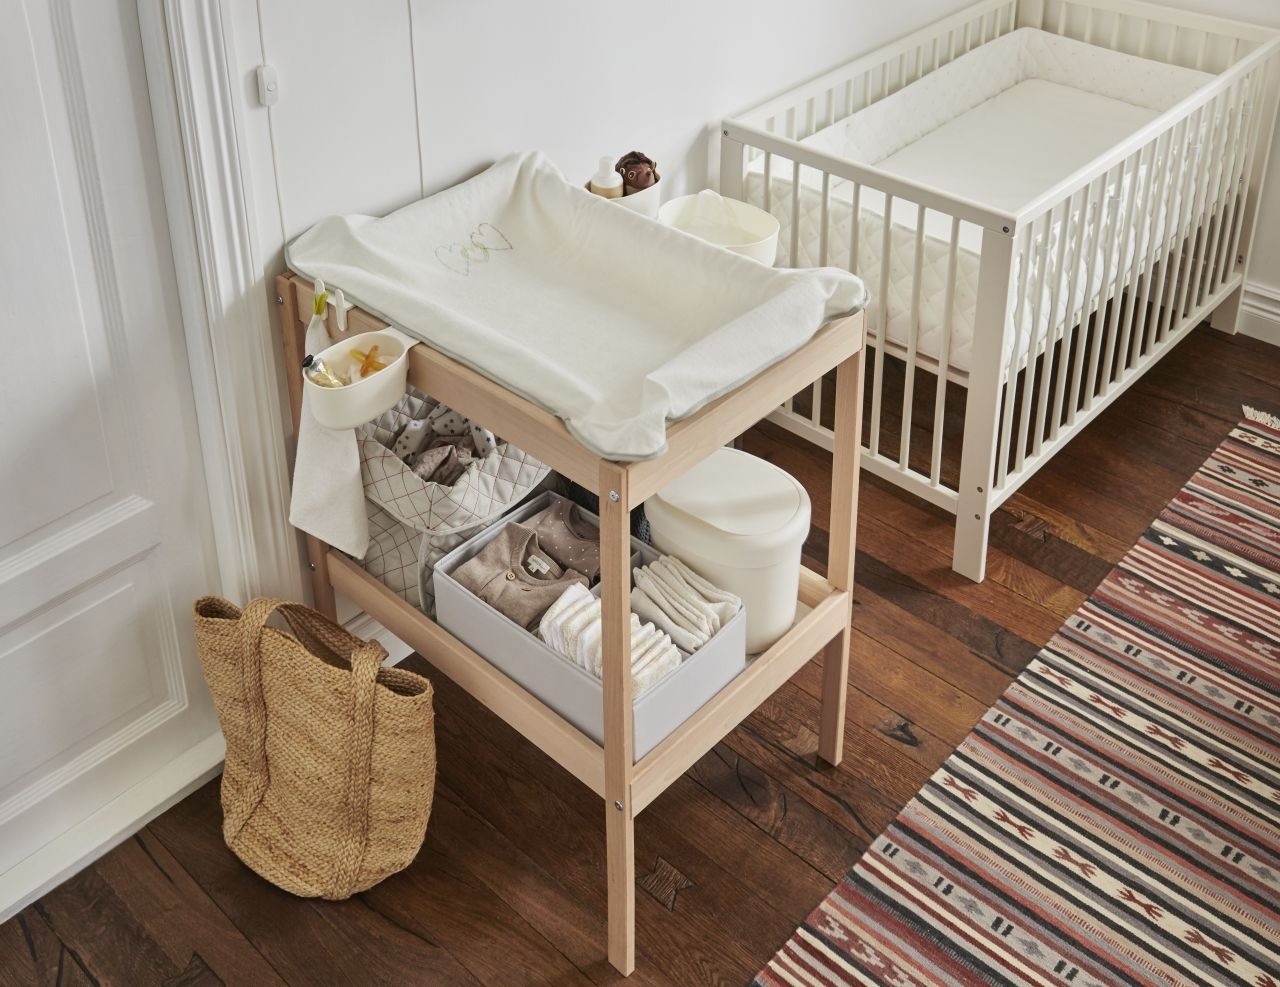 The Sniglar Changing Table Makes Diaper Changing Less Of A Chore It Also Has A Practical Sto Baby Changing Tables Minimal Baby Room Baby Bedroom Ideas Neutral